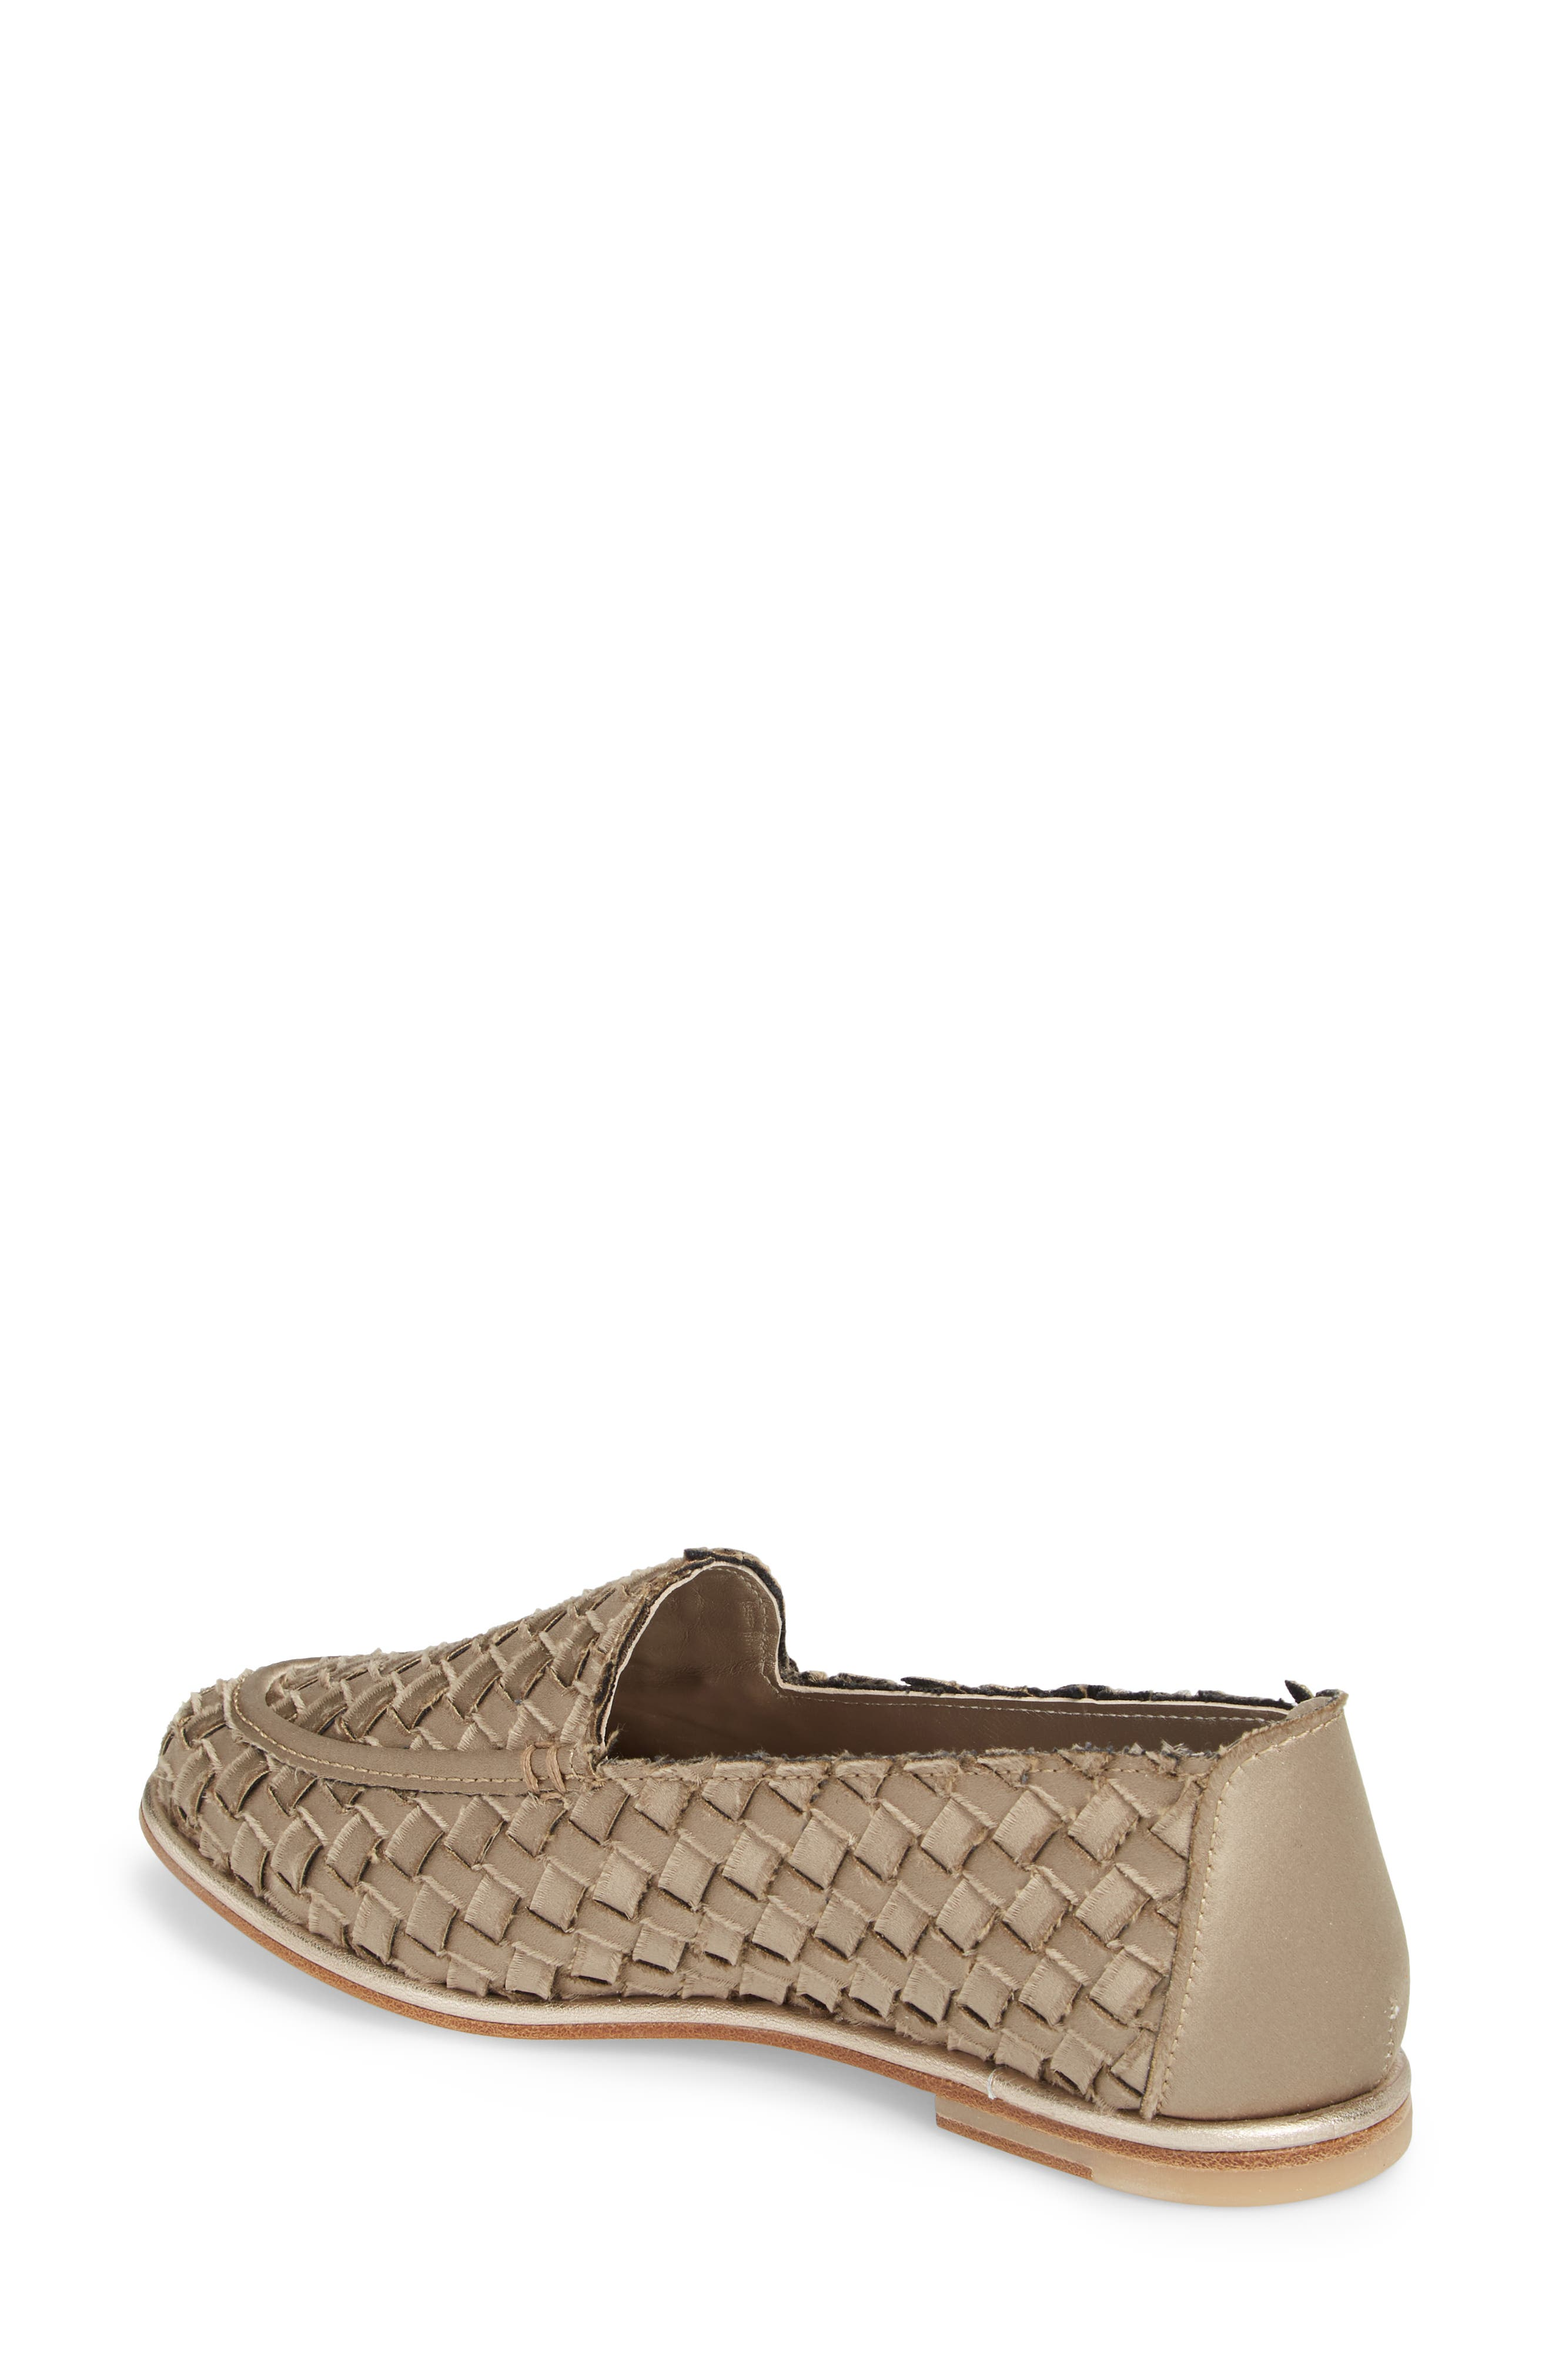 Woven Loafer,                             Alternate thumbnail 2, color,                             TAUPE SATIN